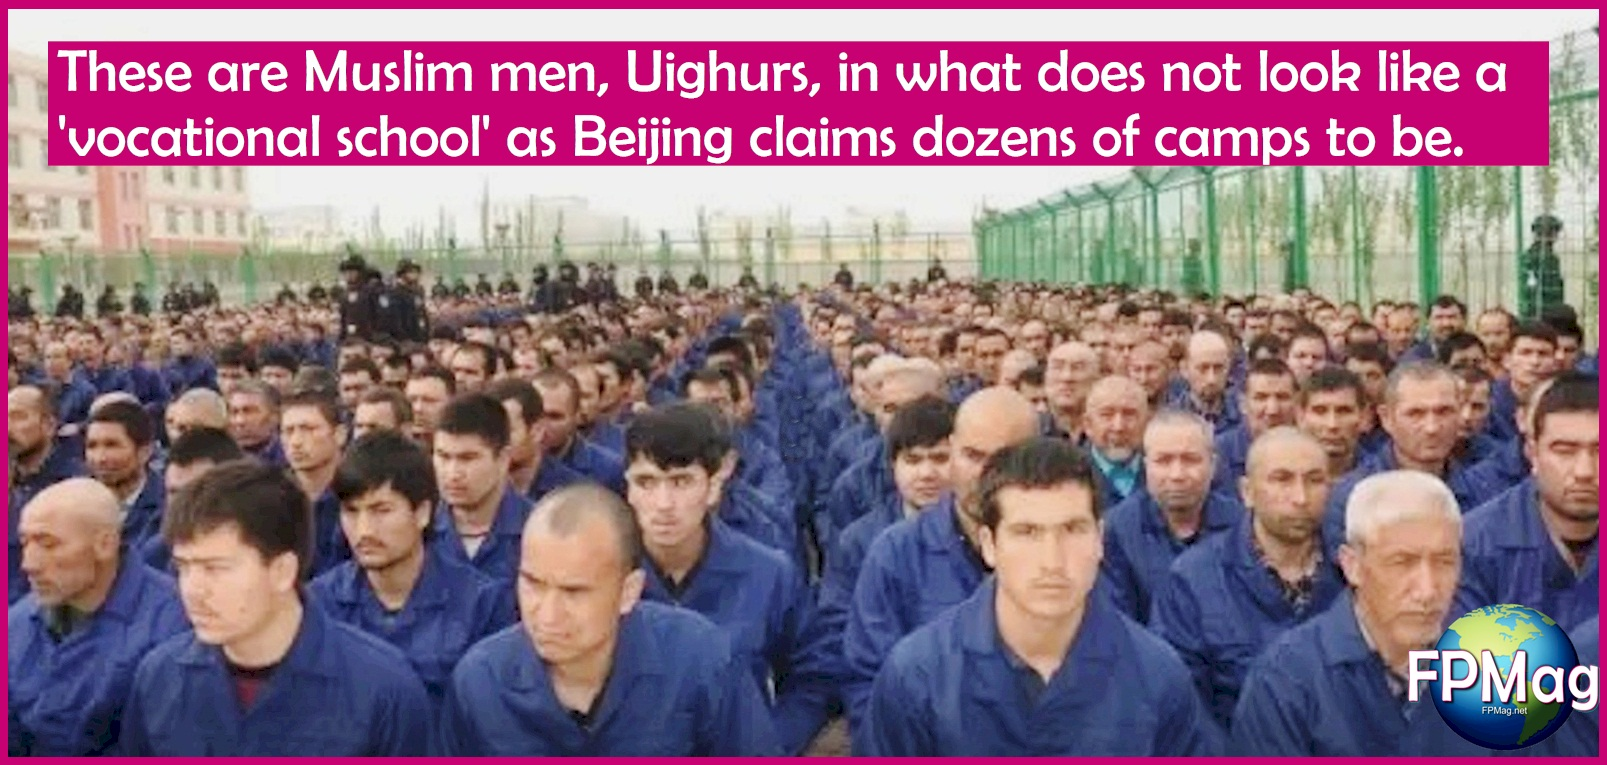 These are Muslim men, Uighurs, in what does not look like a 'vocational school' as Beijing claims dozens of camps to be.